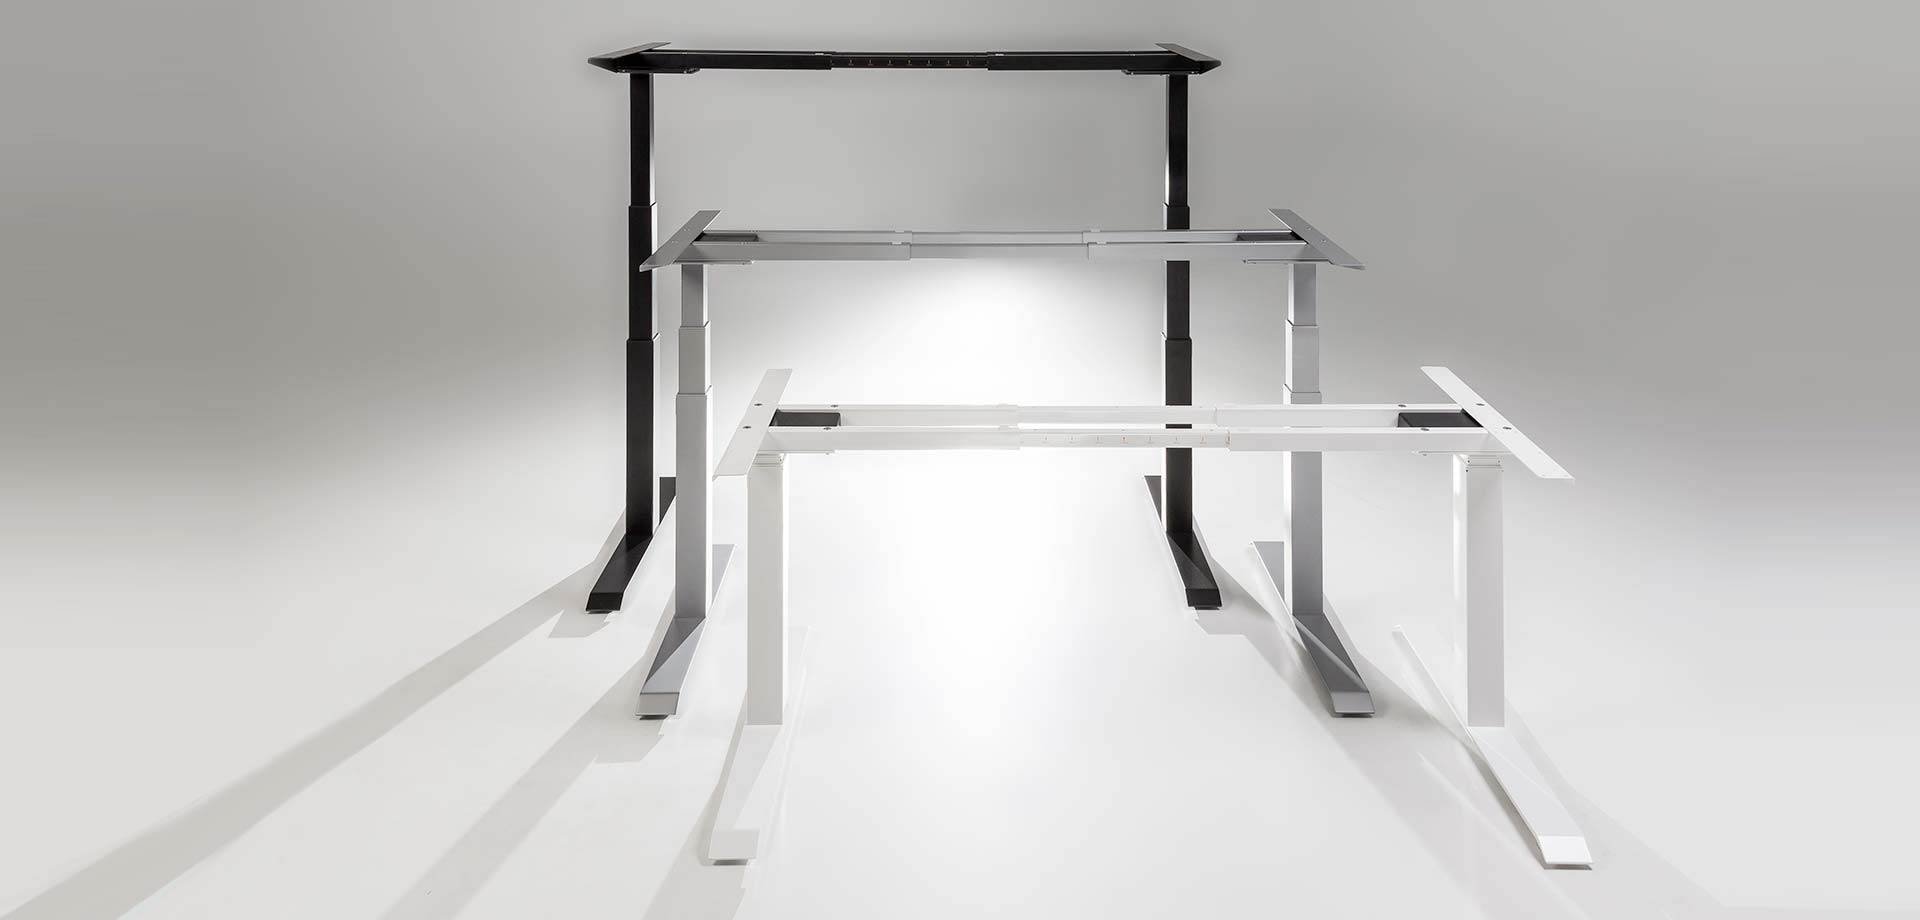 Standing Desk Gallery 47 MultiTable